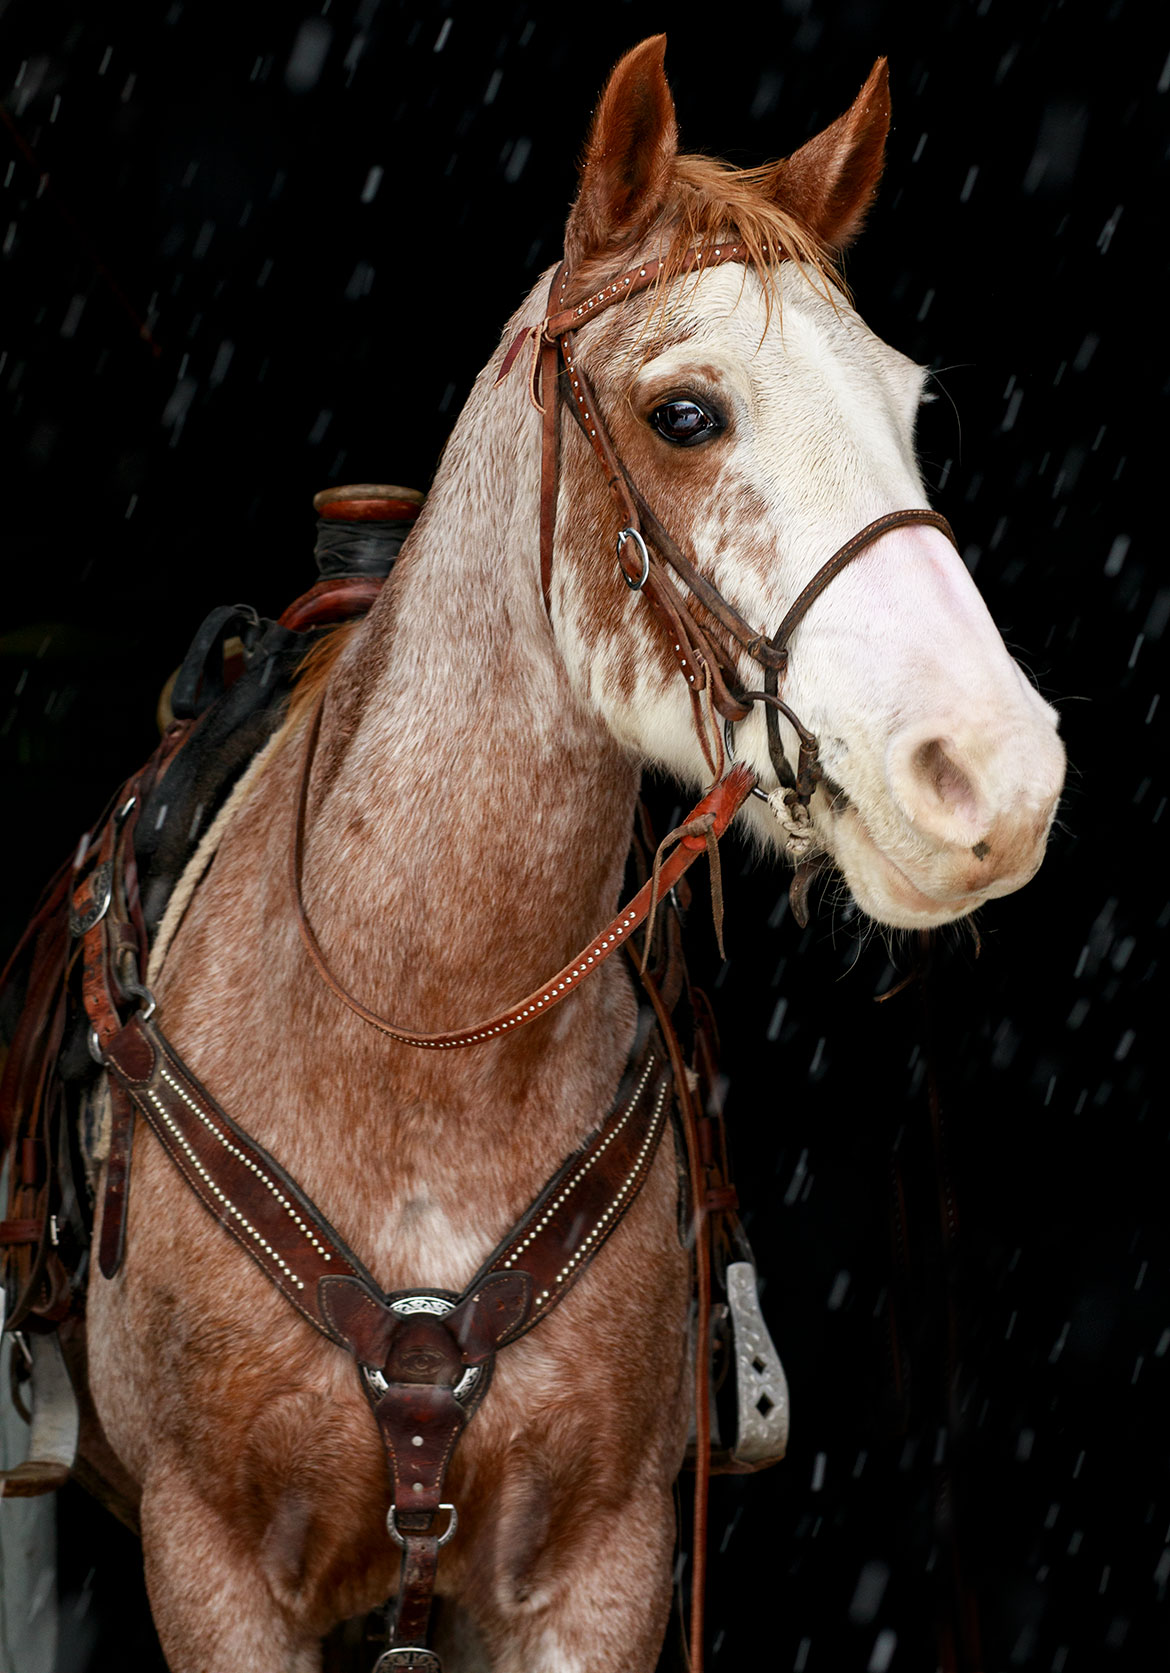 Horse Portrait - Jean Sweet Photography